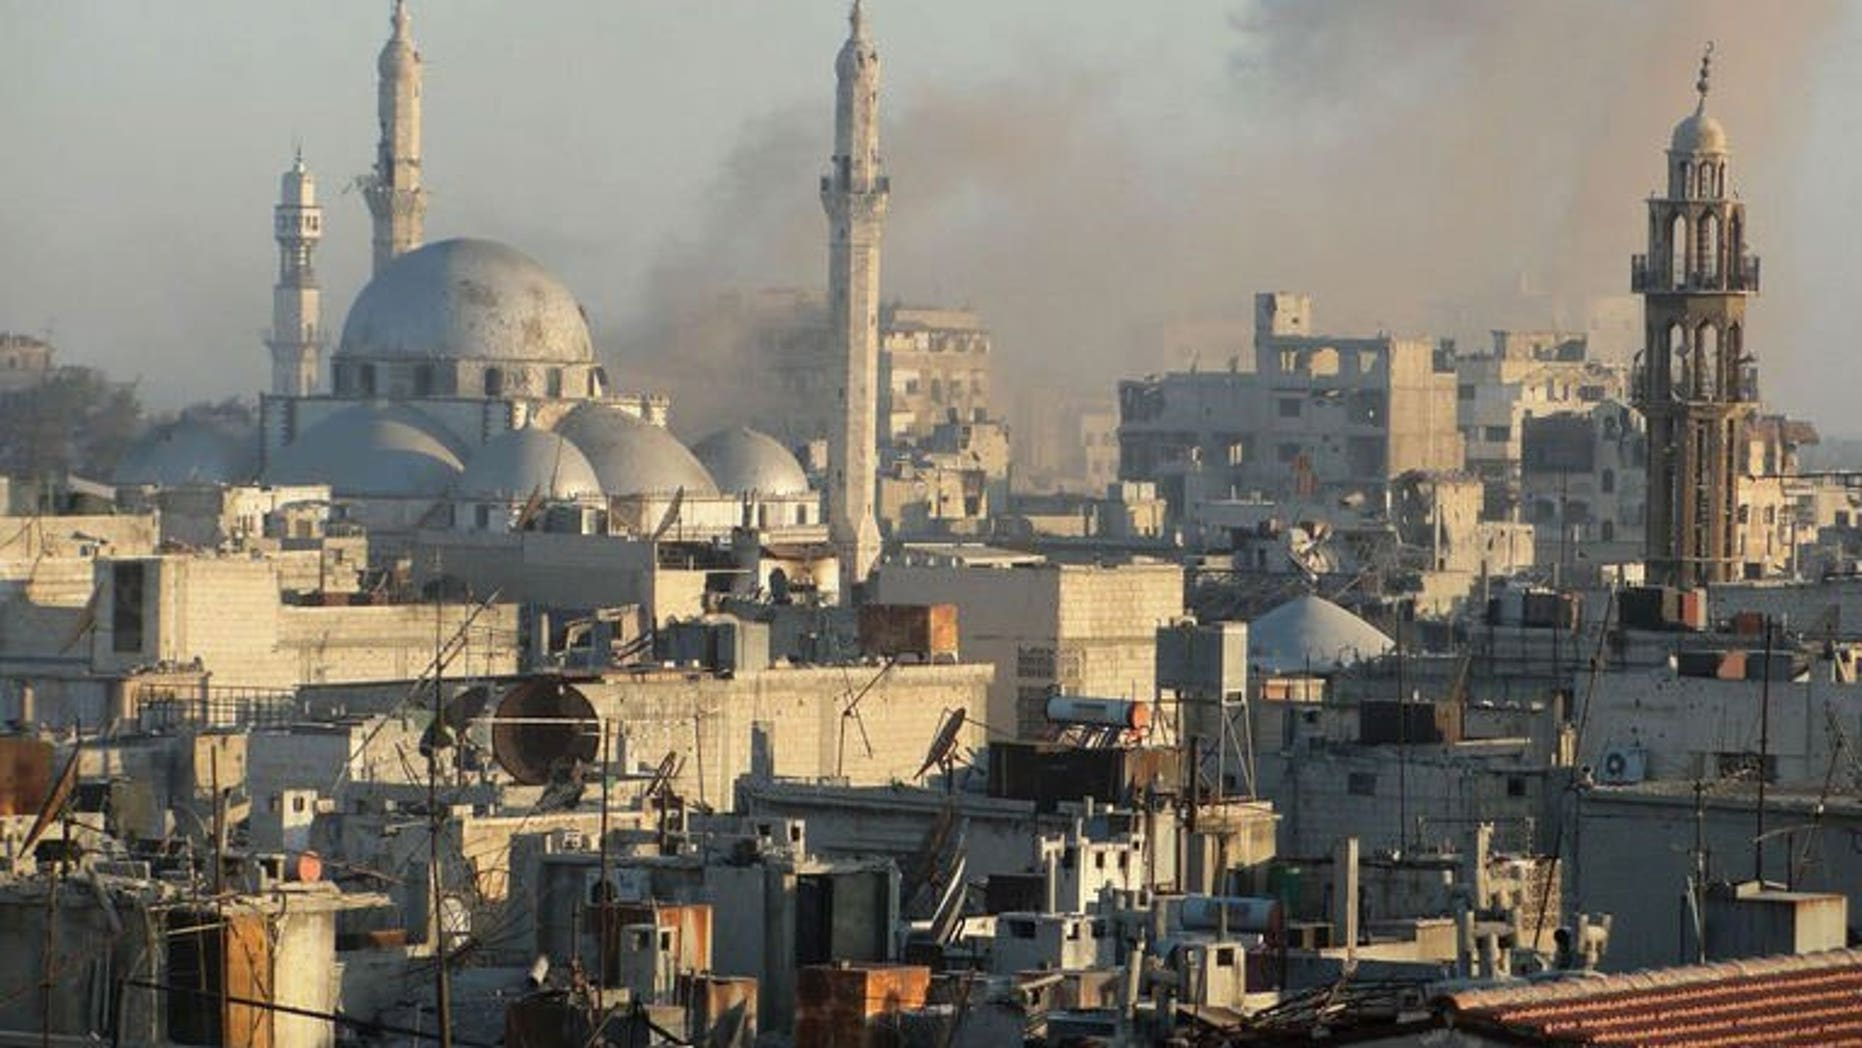 Image released by the Syrian opposition's Shaam News Network on July 27, 2013, claims to show smoke billowing from buildings near Khaled bin Walid mosque in the Khalidiyah neighbourhood of the central Syrian city of Homs. Seven children in the northern Syrian province of Aleppo and another four in Homs were among 17 civilians killed in air raids on Tuesday, a watchdog said.